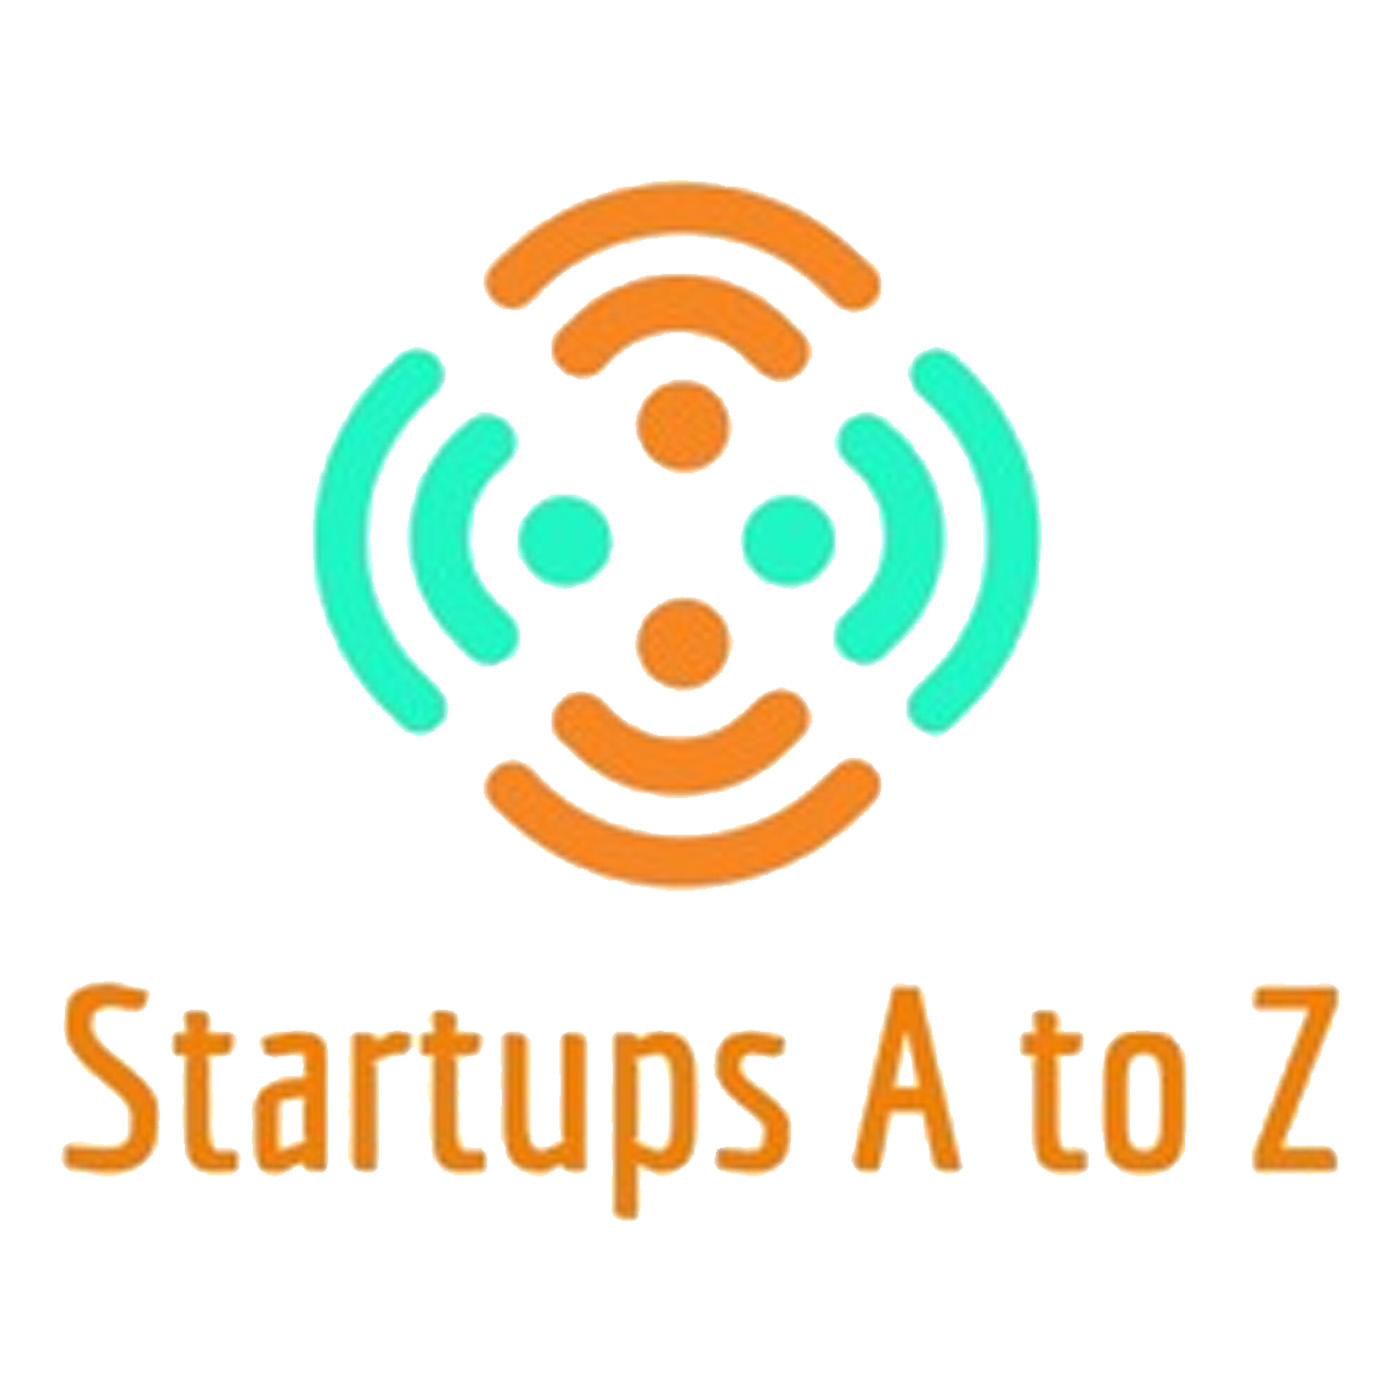 Startups A to Z